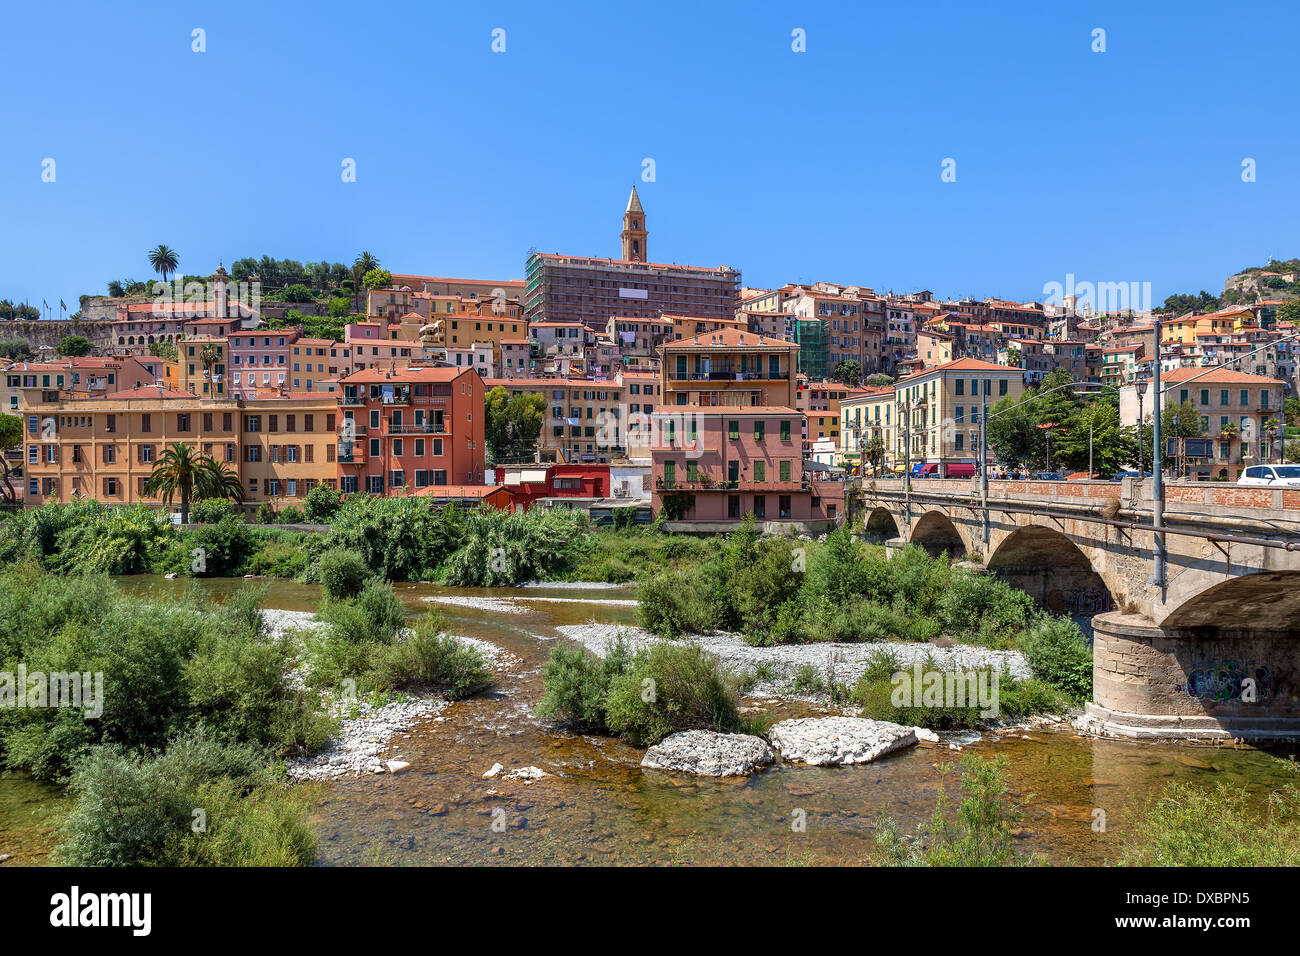 Urban bridge across riverbed overgrown with trees, shrubs and grass and old town of Ventimiglia under blue sky in Italy. - Stock Image